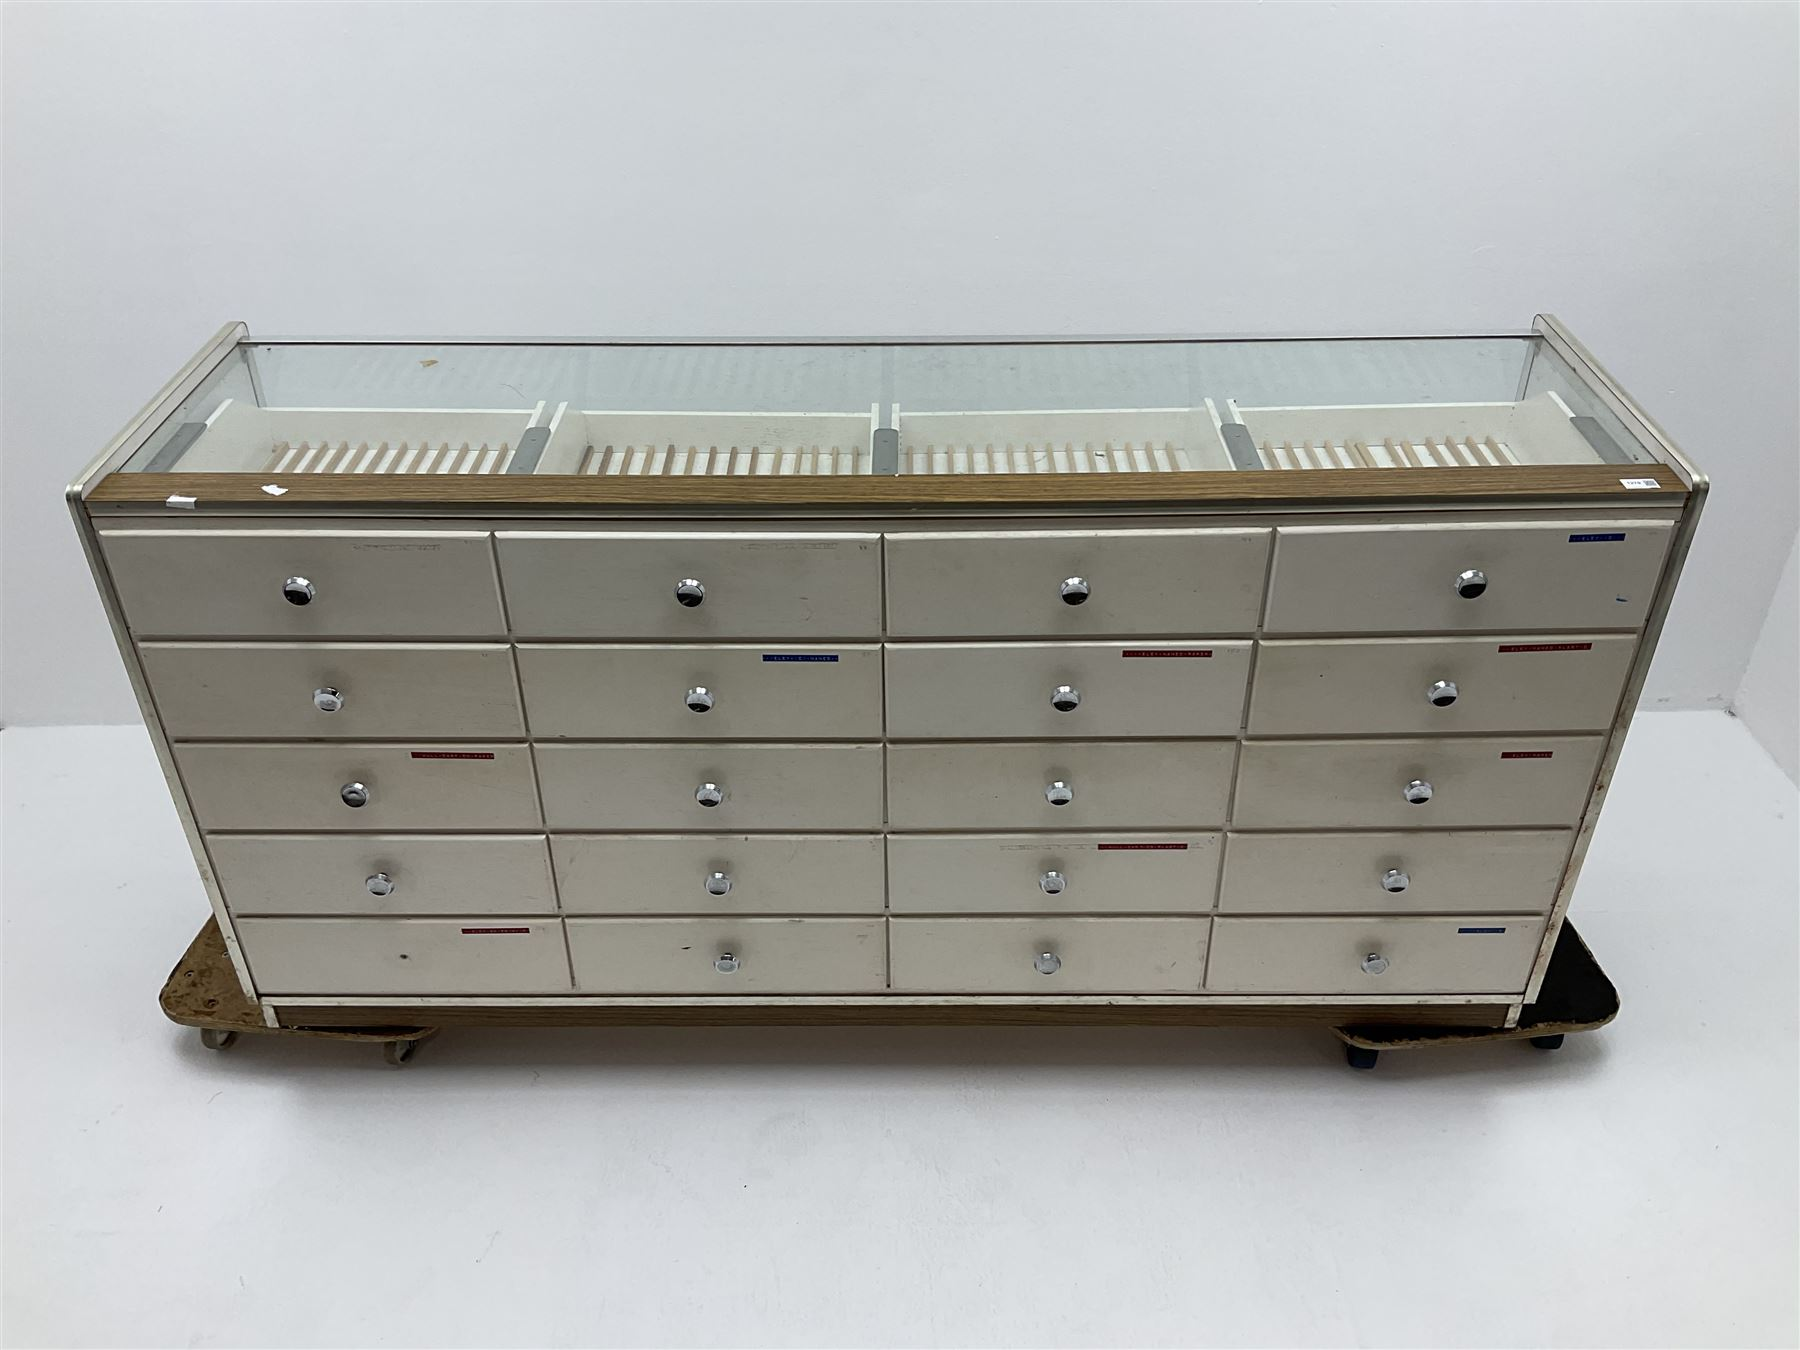 Mid 20th century vintage haberdashery shop display/serving counter - Image 3 of 4